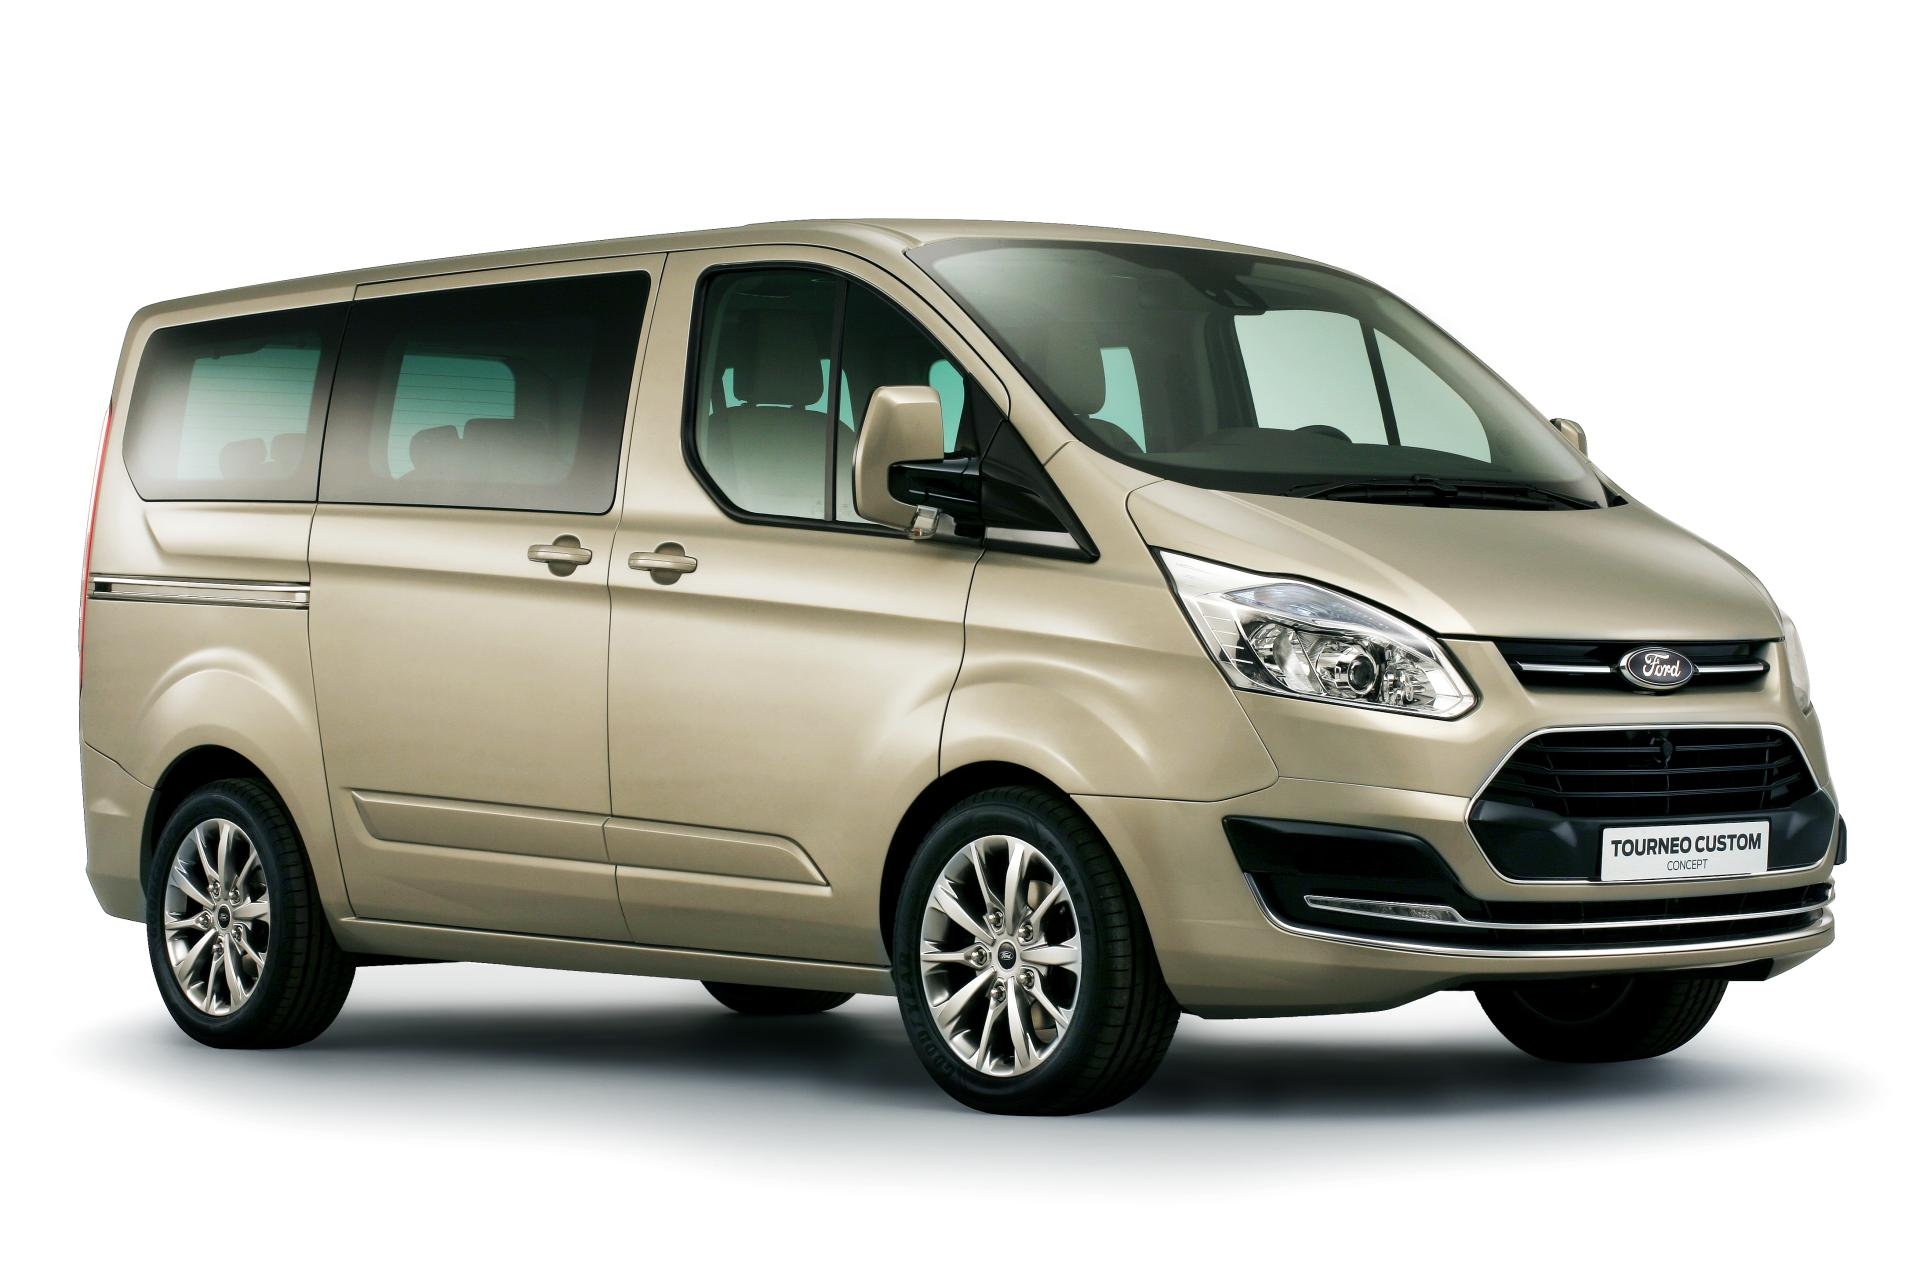 2012 Ford Tourneo Custom Concept Technical Specifications